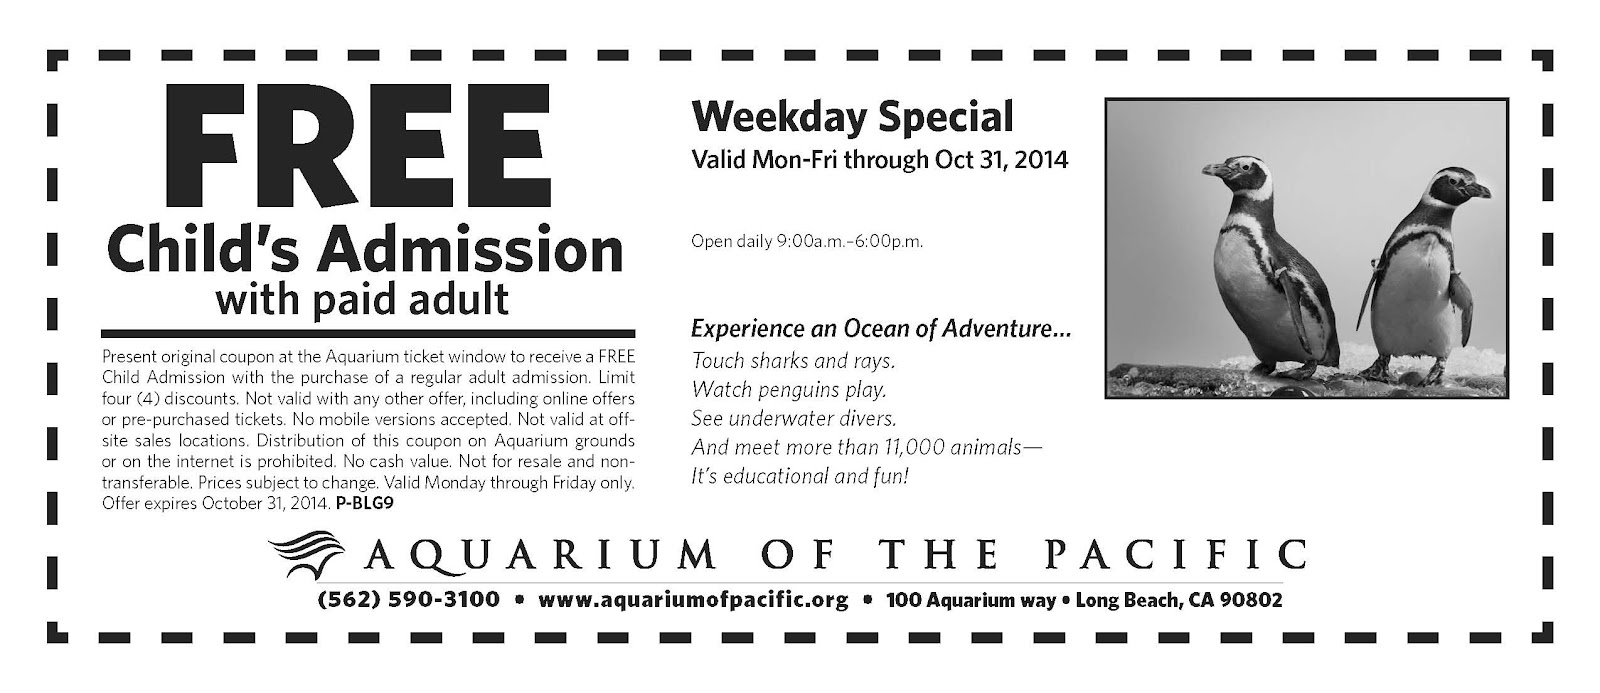 image relating to Newport Aquarium Coupons Printable known as Price cut coupon aquarium of the pacific / Exactly where in direction of acquire